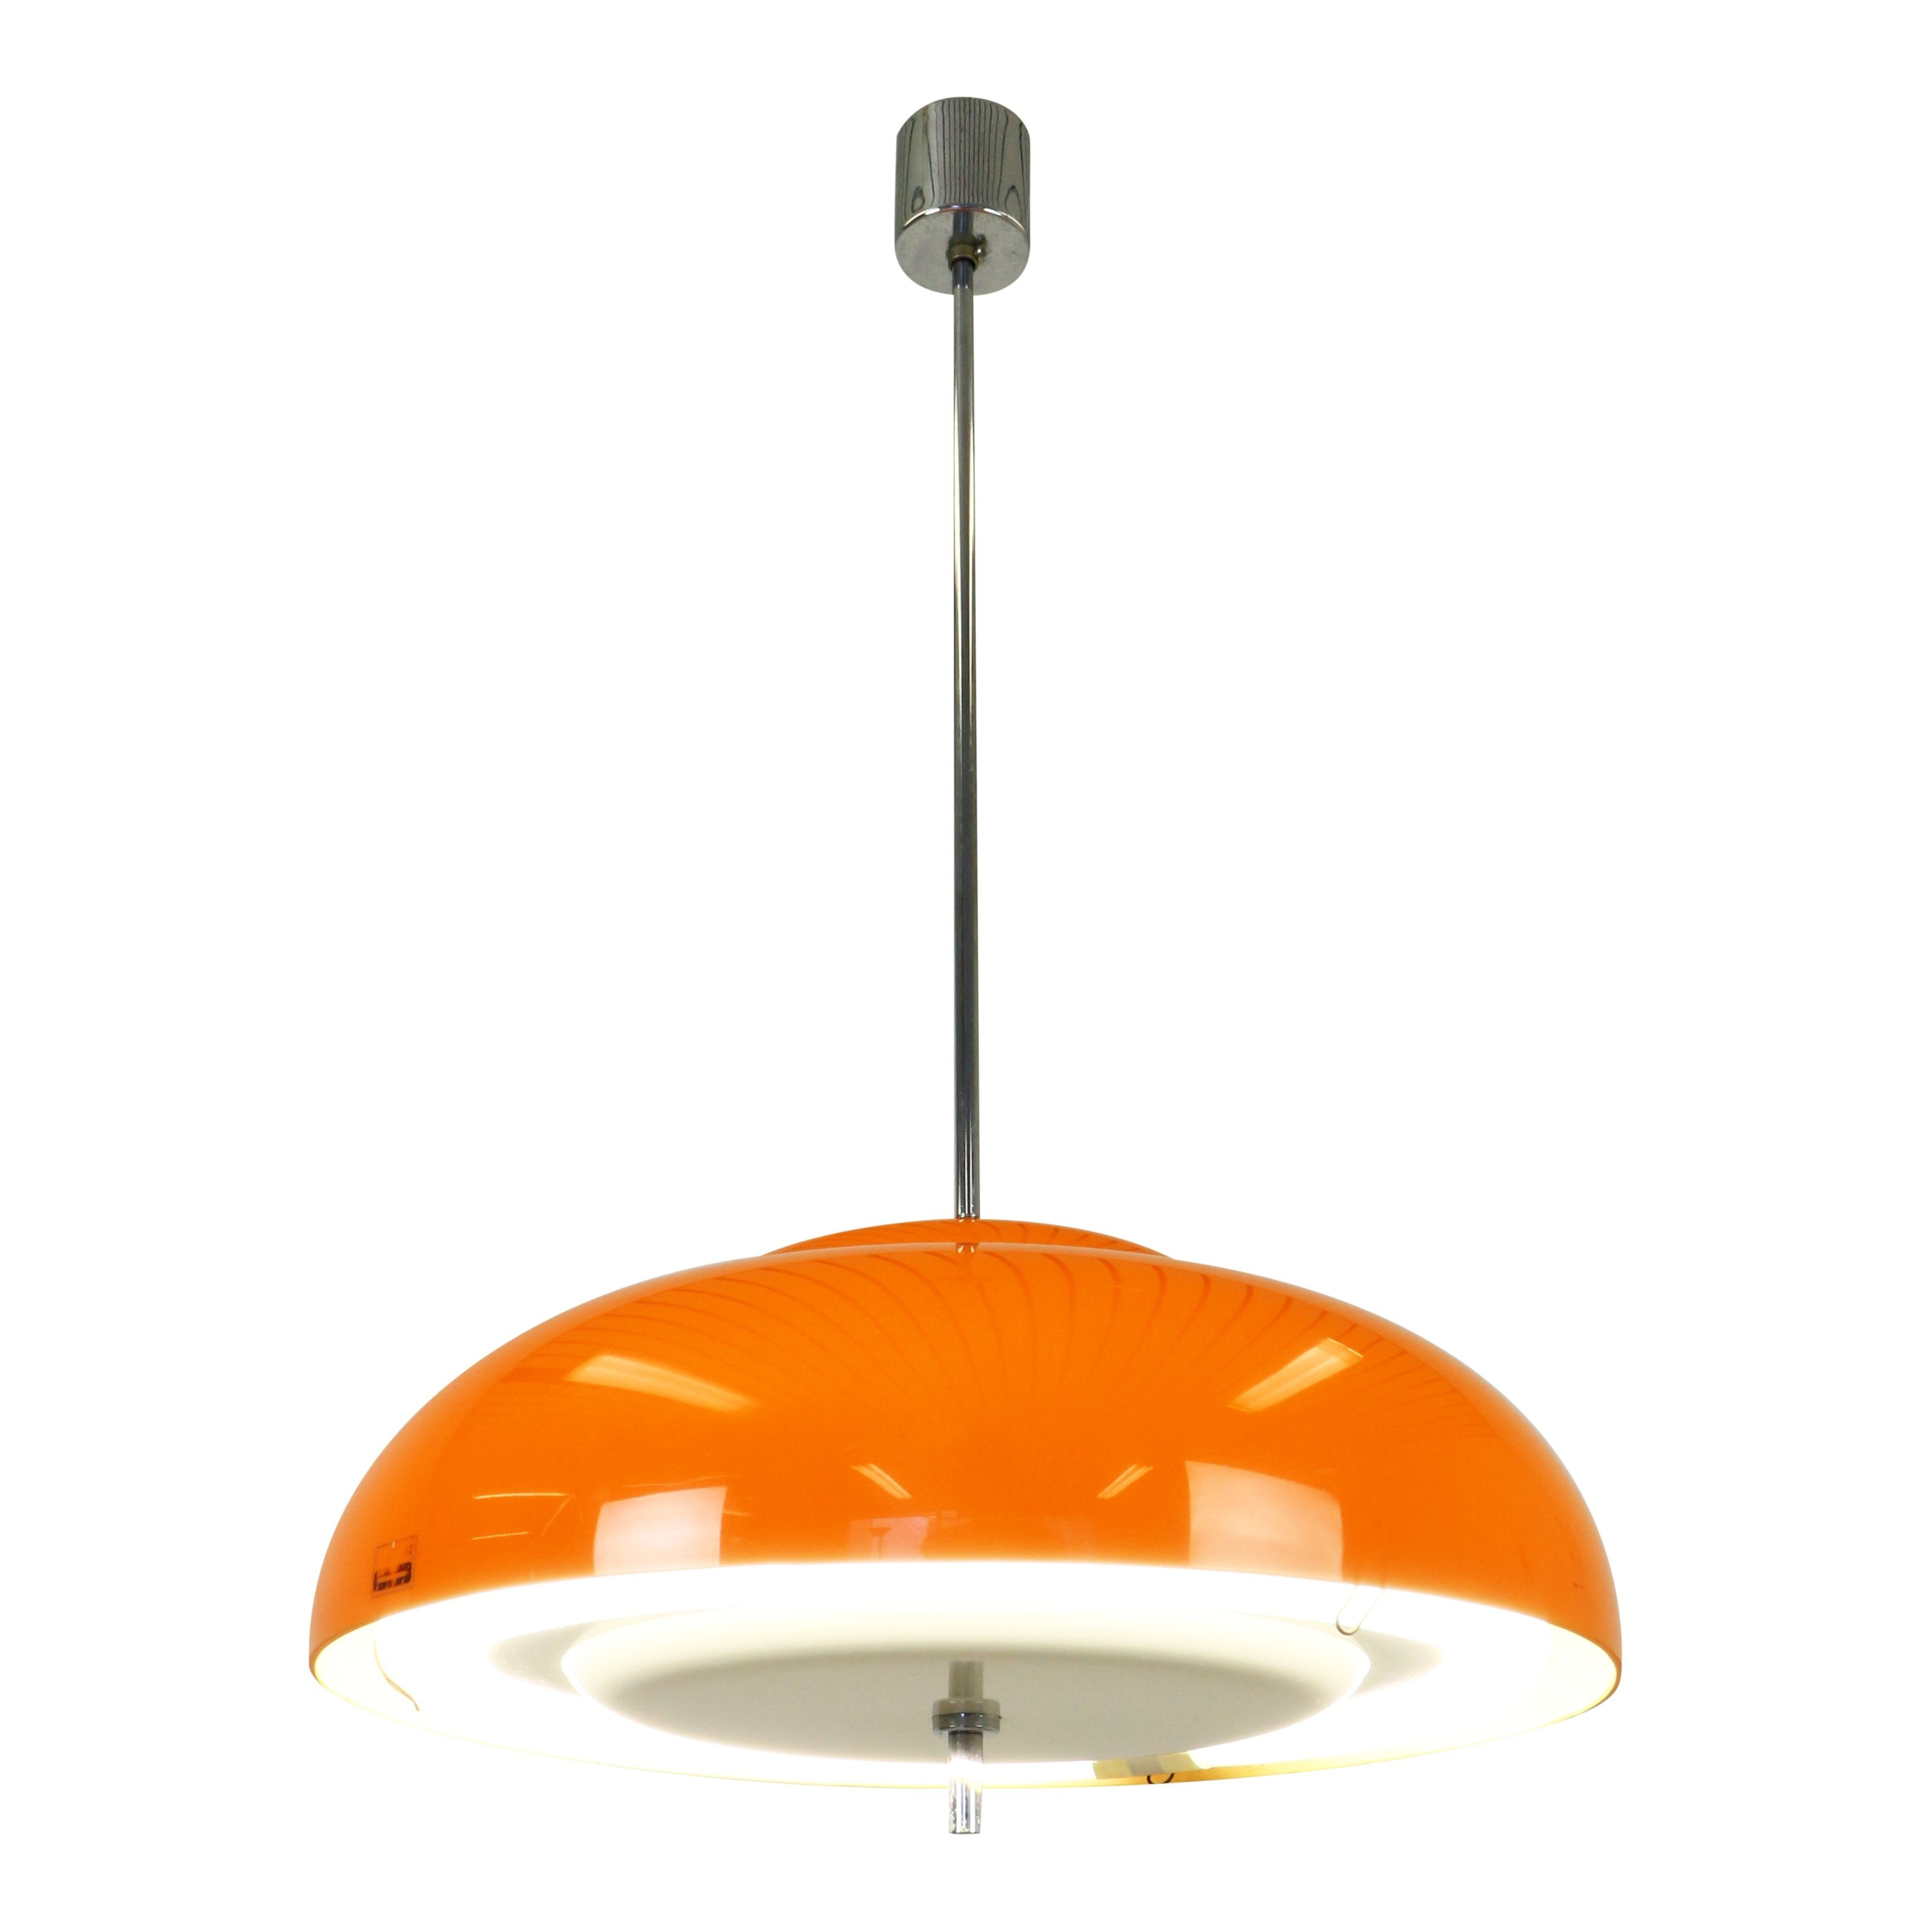 Vintage Round Fluorescent Light Fixture: Space Age Orange Pendant From The Seventies With Round